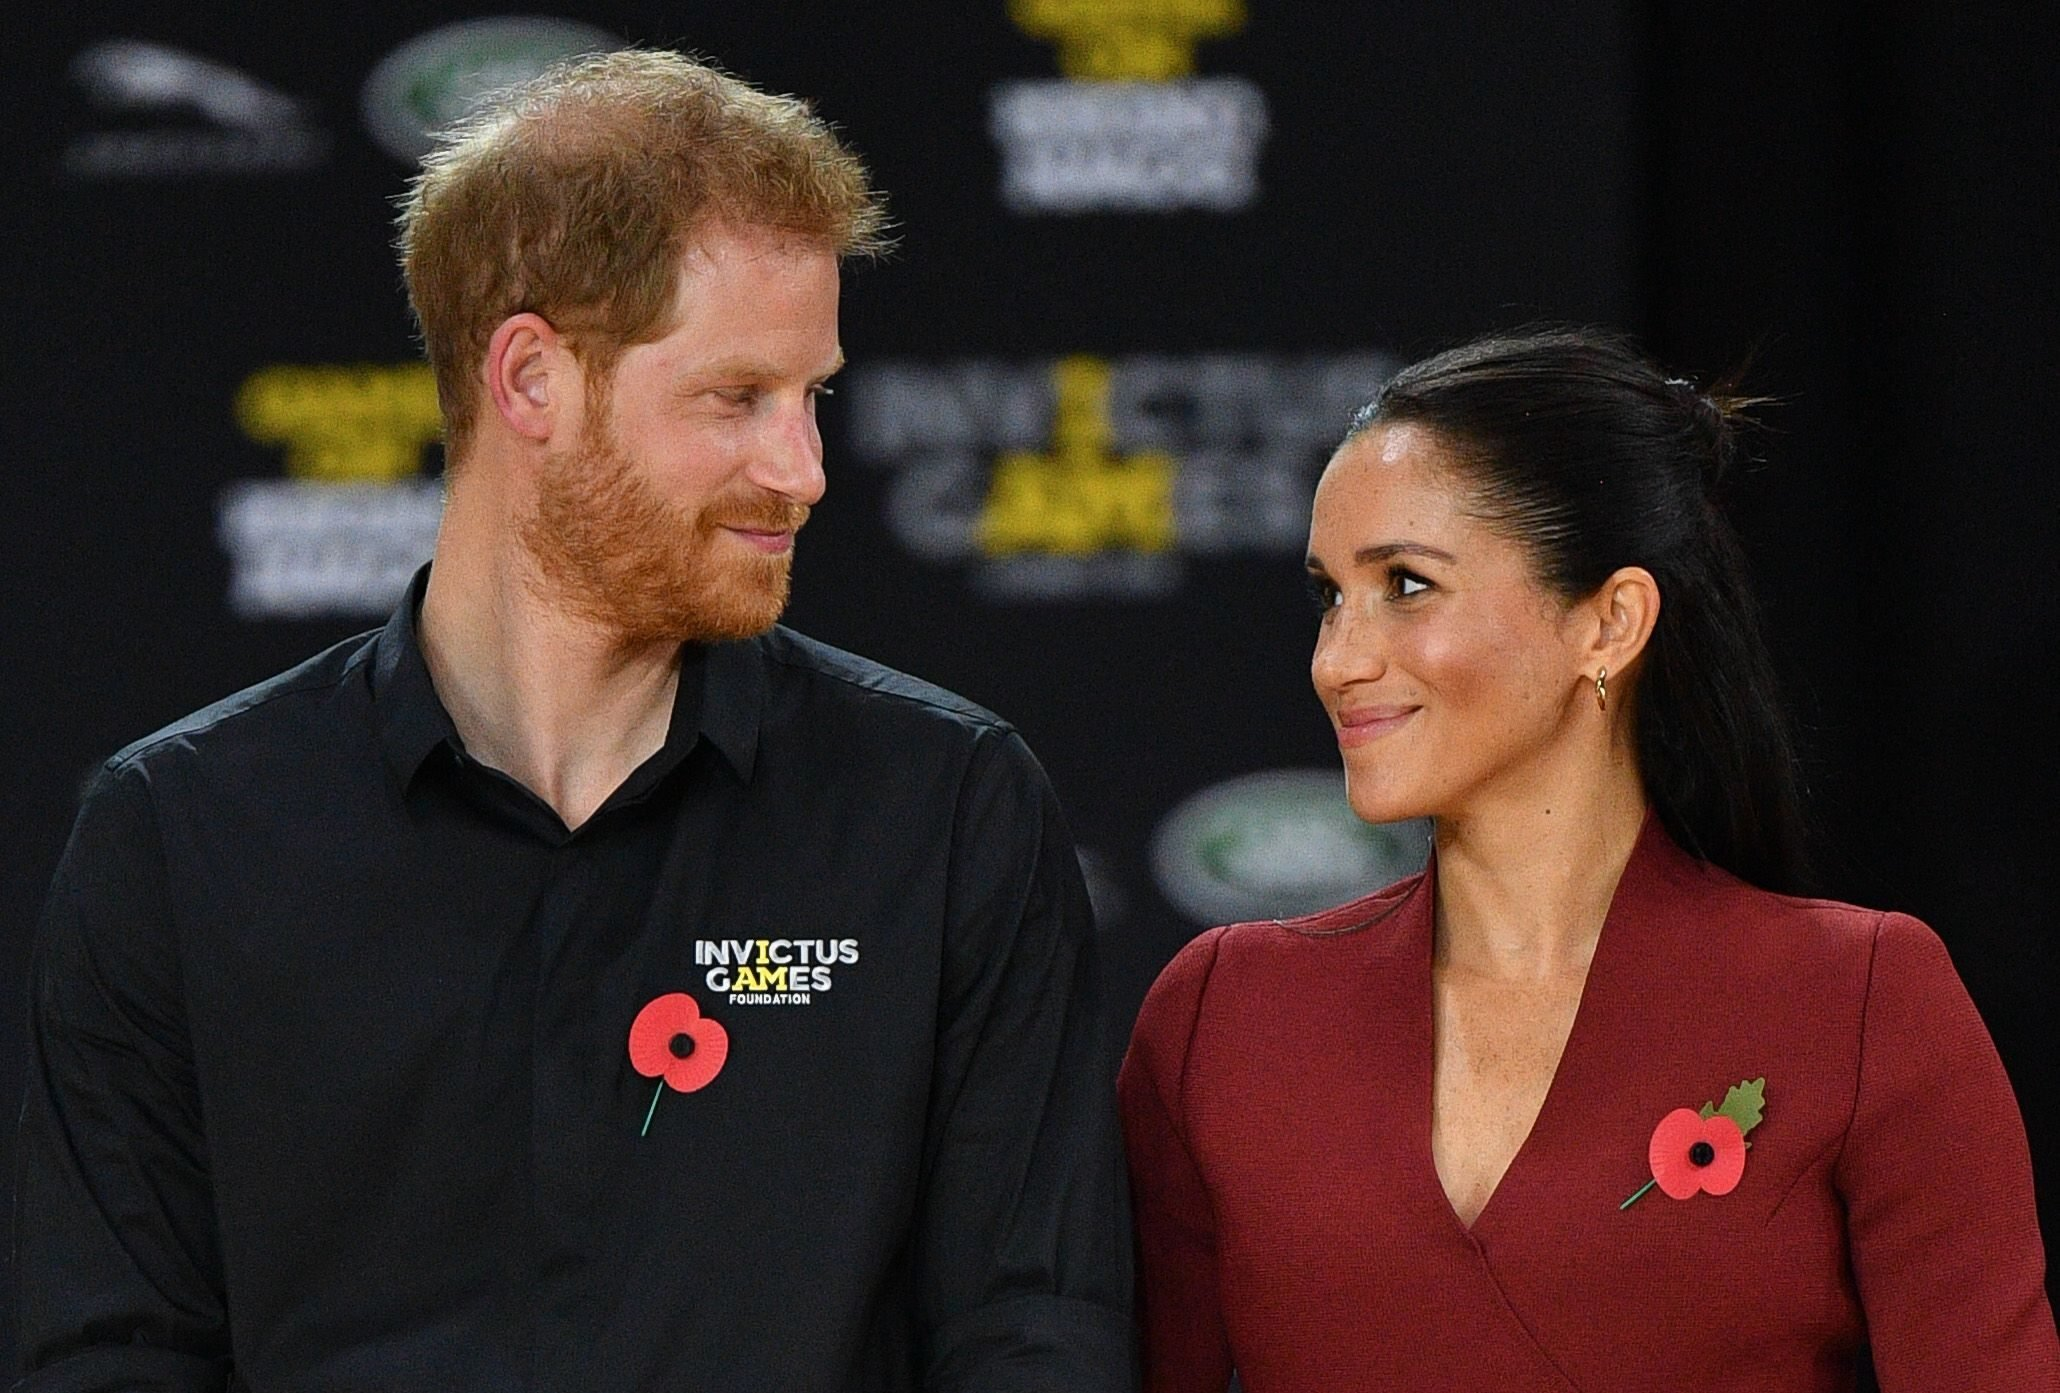 Prince Harry and Meghan Duchess of Sussex tour of Australia - 27 Oct 2018